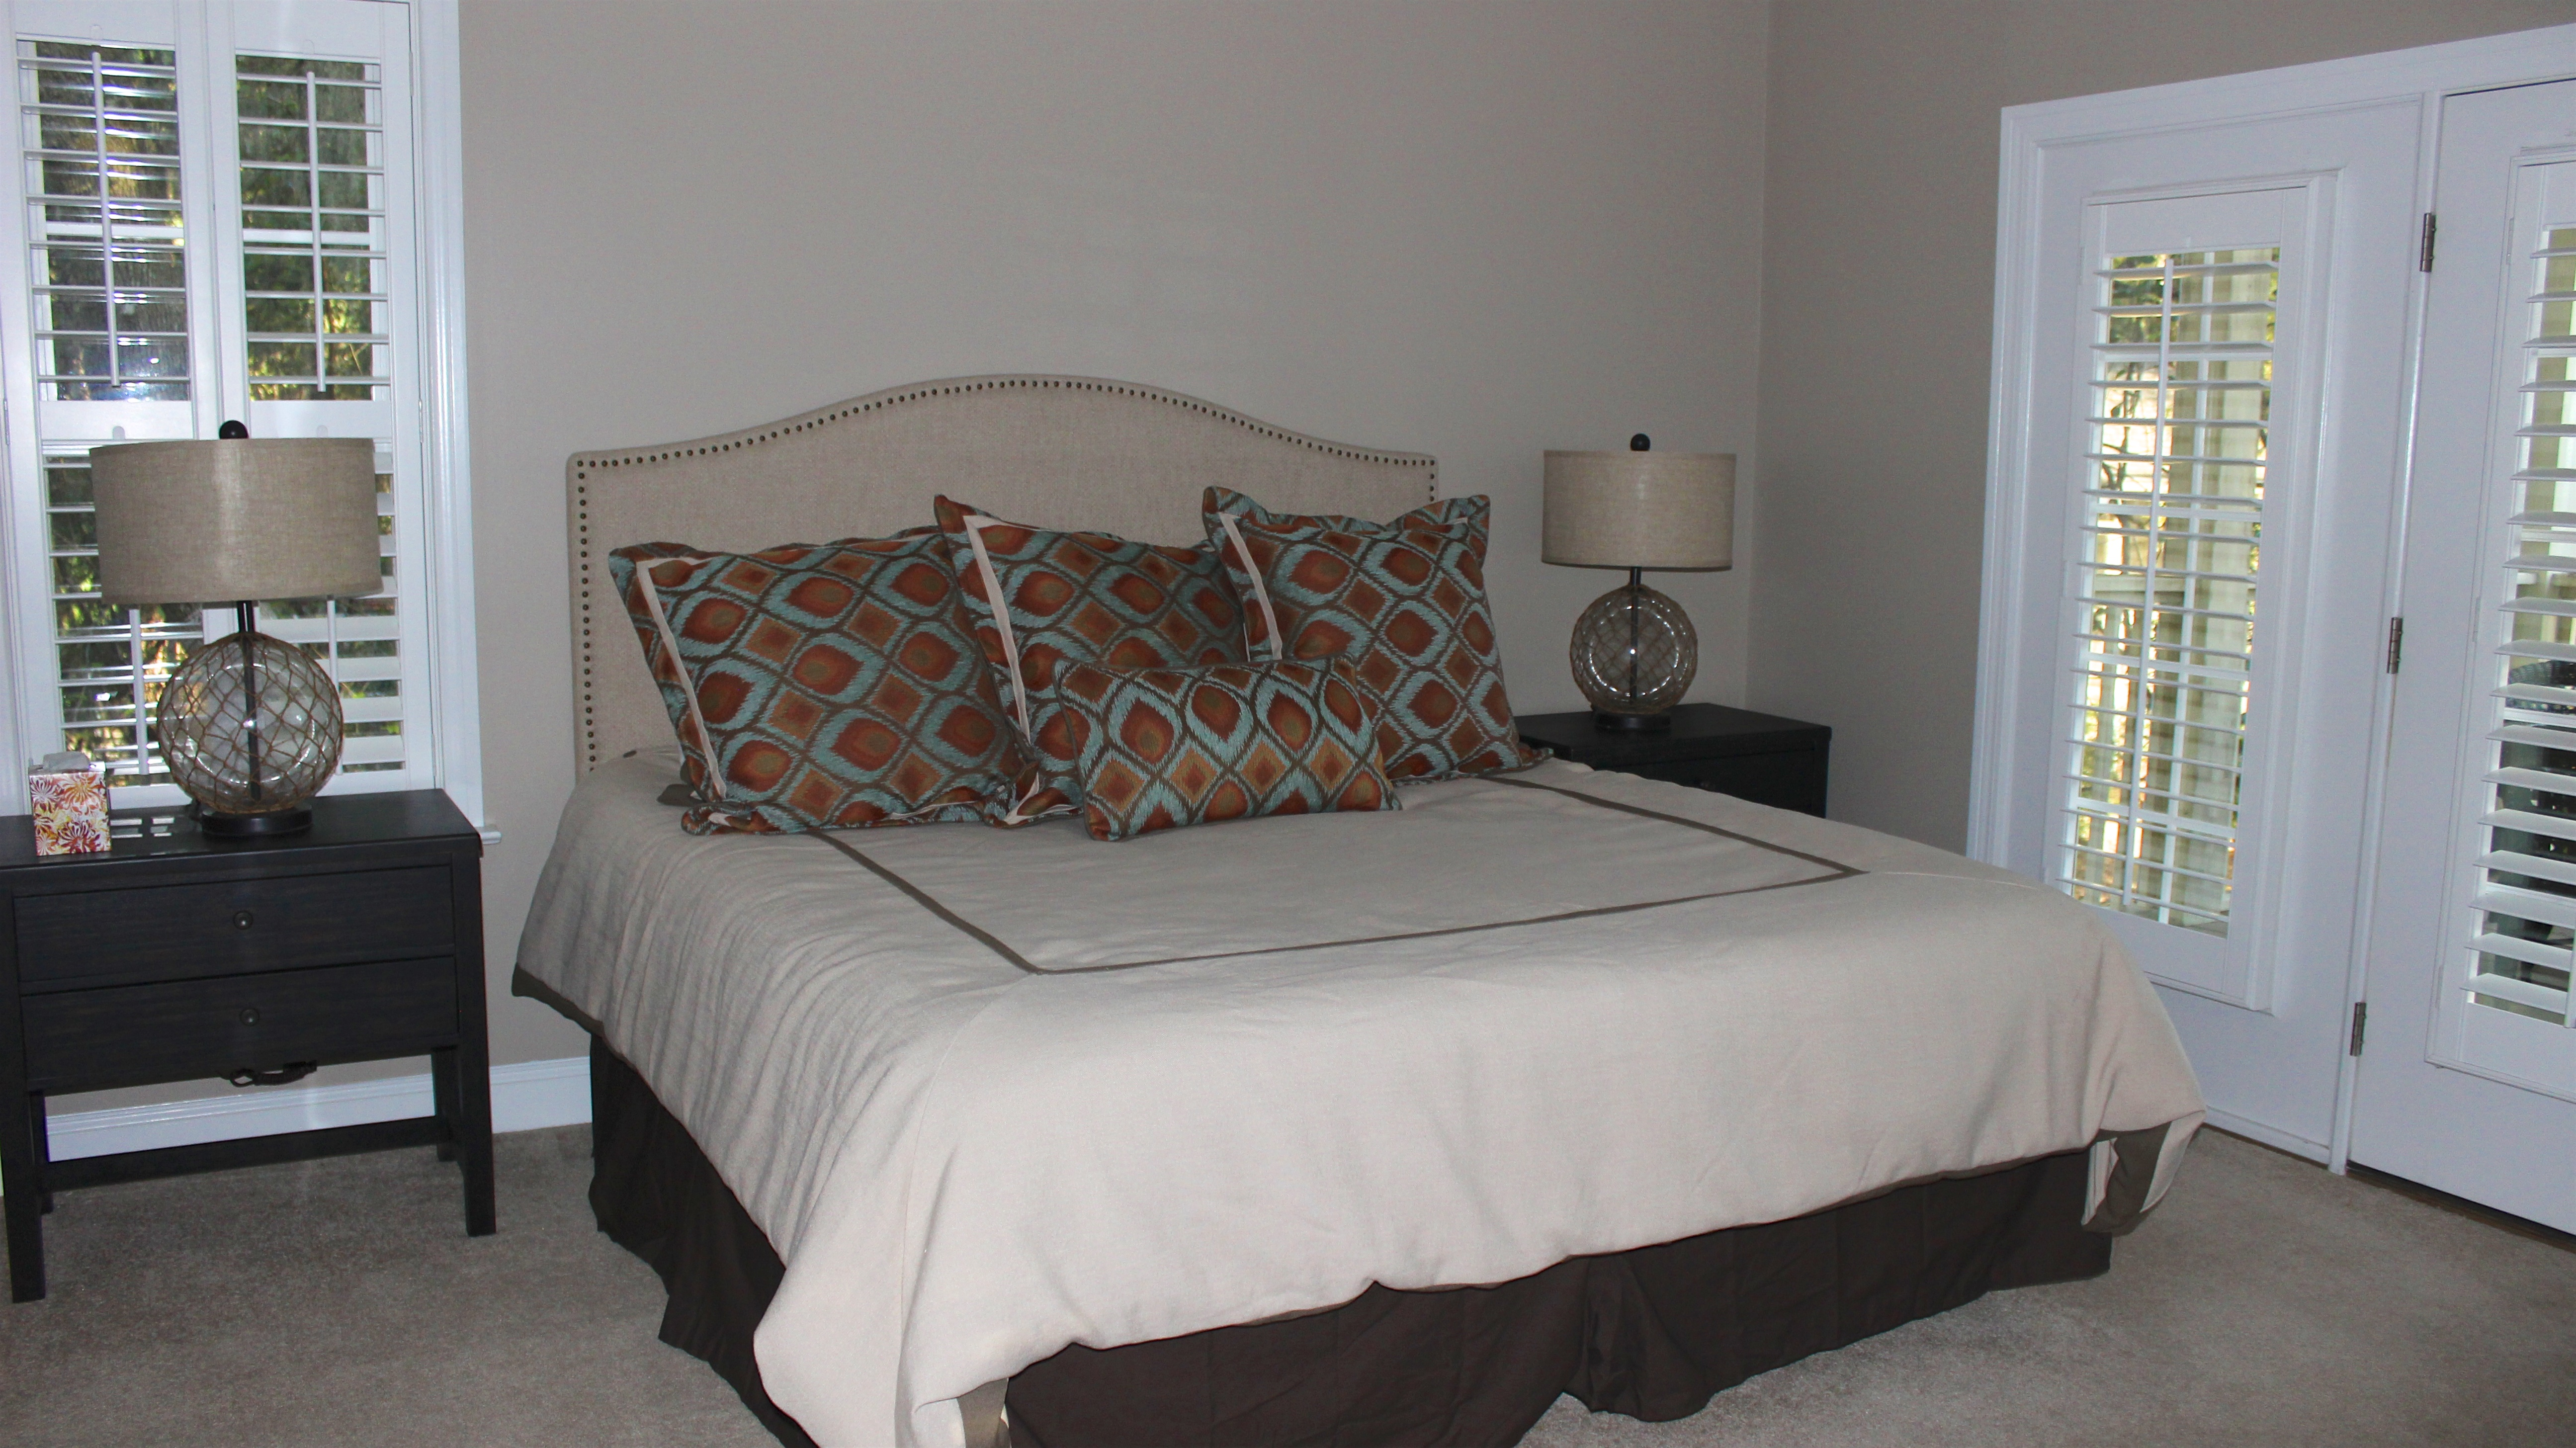 The master bedroom has a king bed and access to the screened porch.